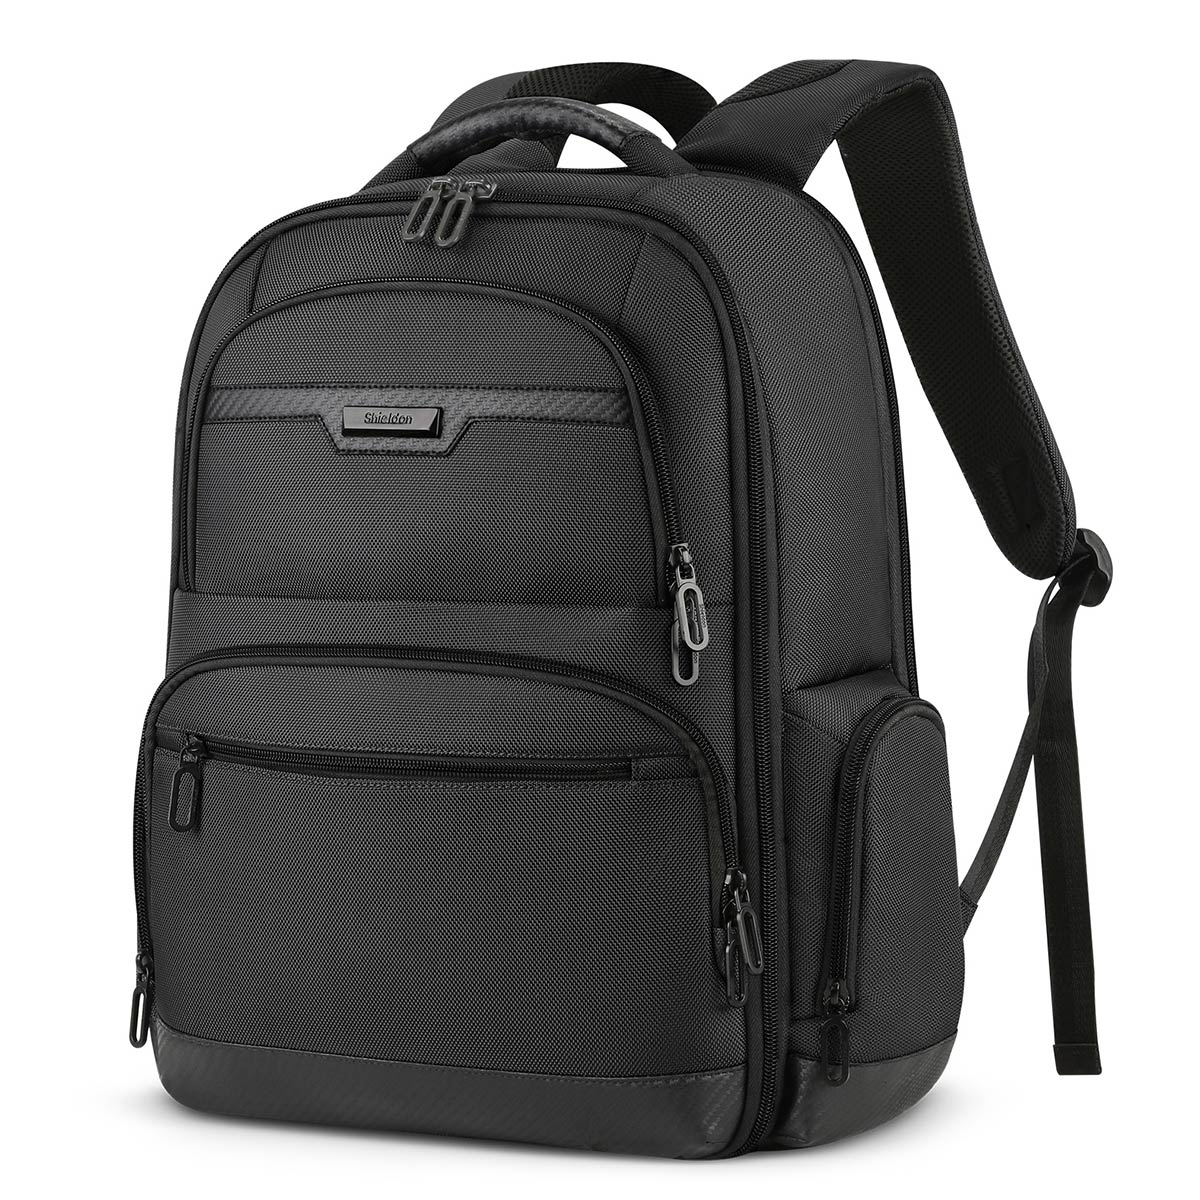 SHIELDON Laptop Backpack 15.6 Inches, Travel Notebook Backpack Bag Casual Daypack 19L